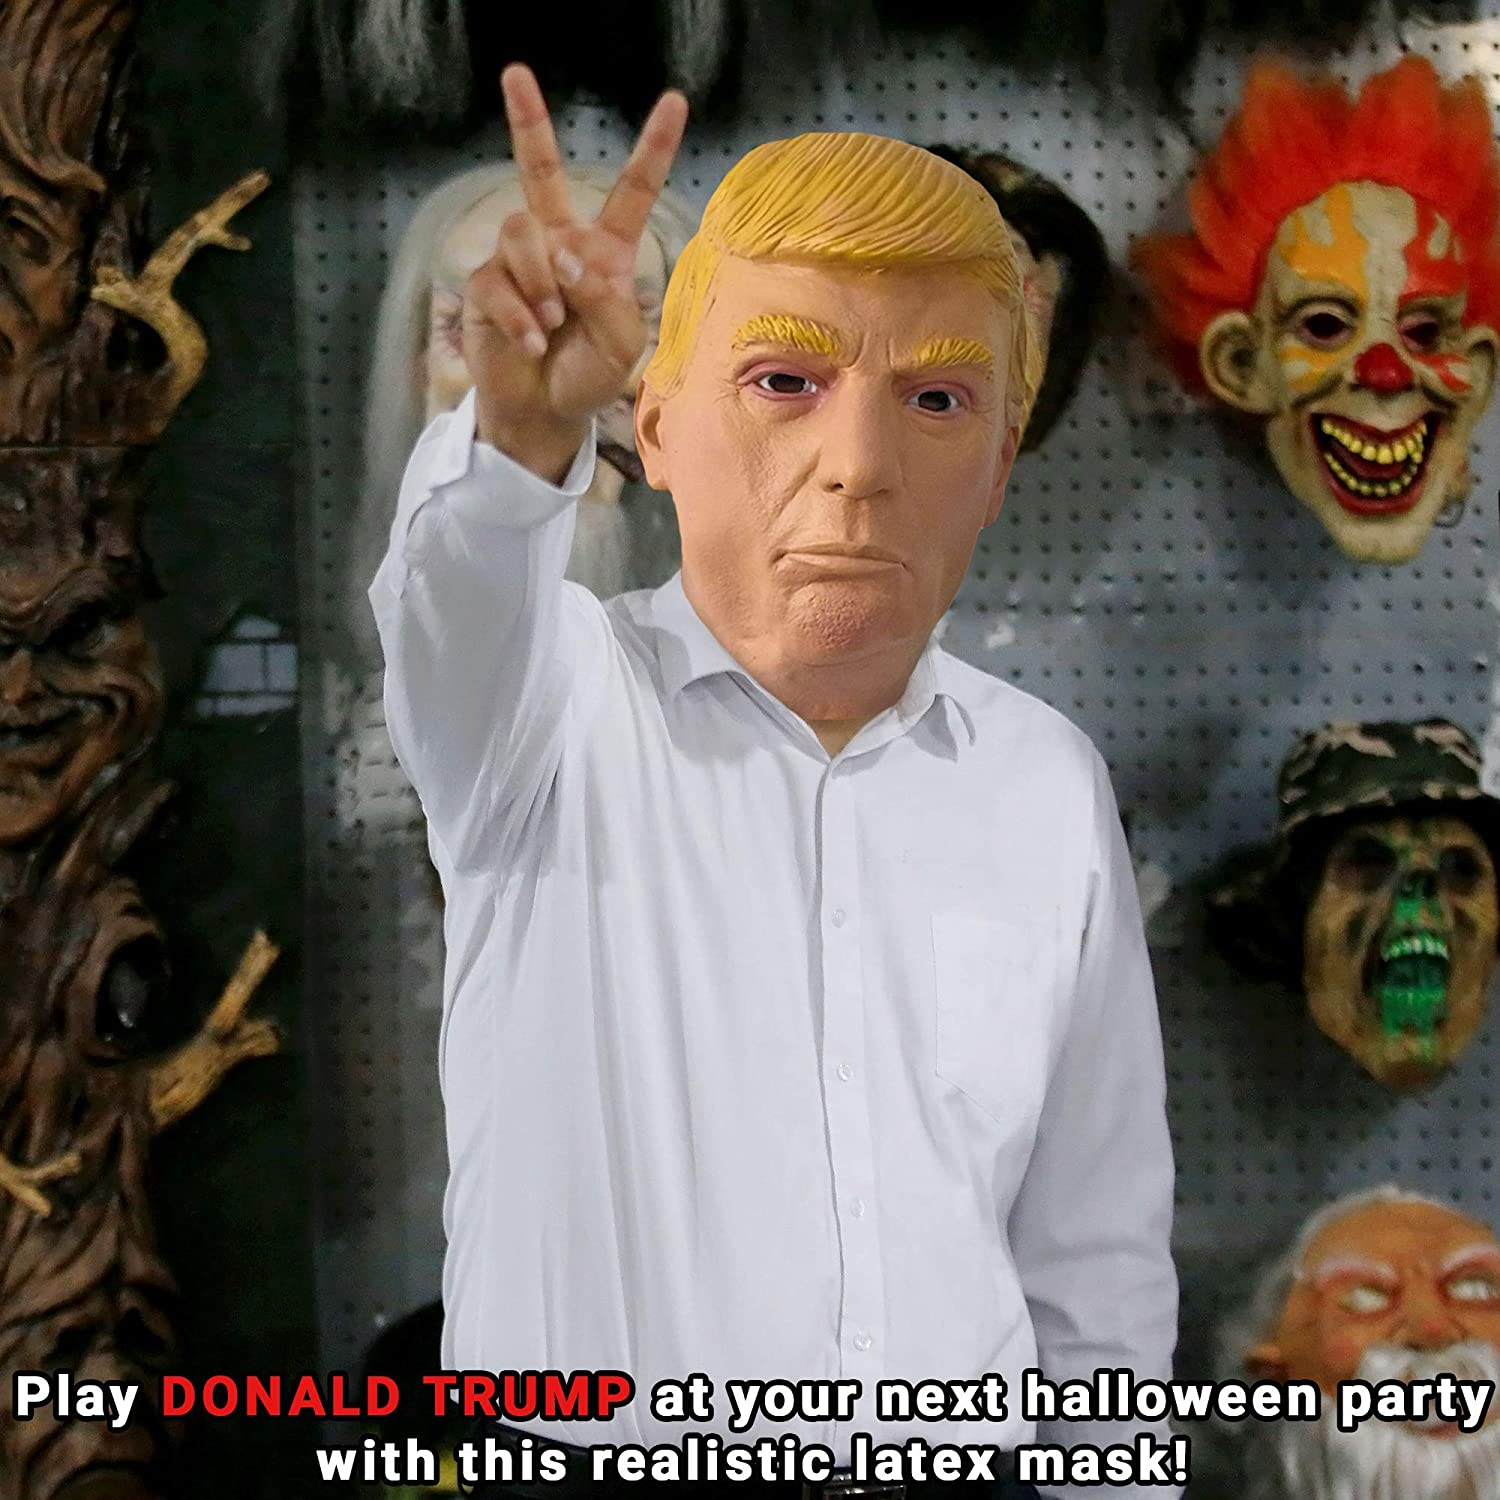 The Twiddlers Máscara de Donald Trump de Latex Fiestas de Disfraces de Halloween - Eventos - Carnavales - Disfraz: Amazon.es: Juguetes y juegos